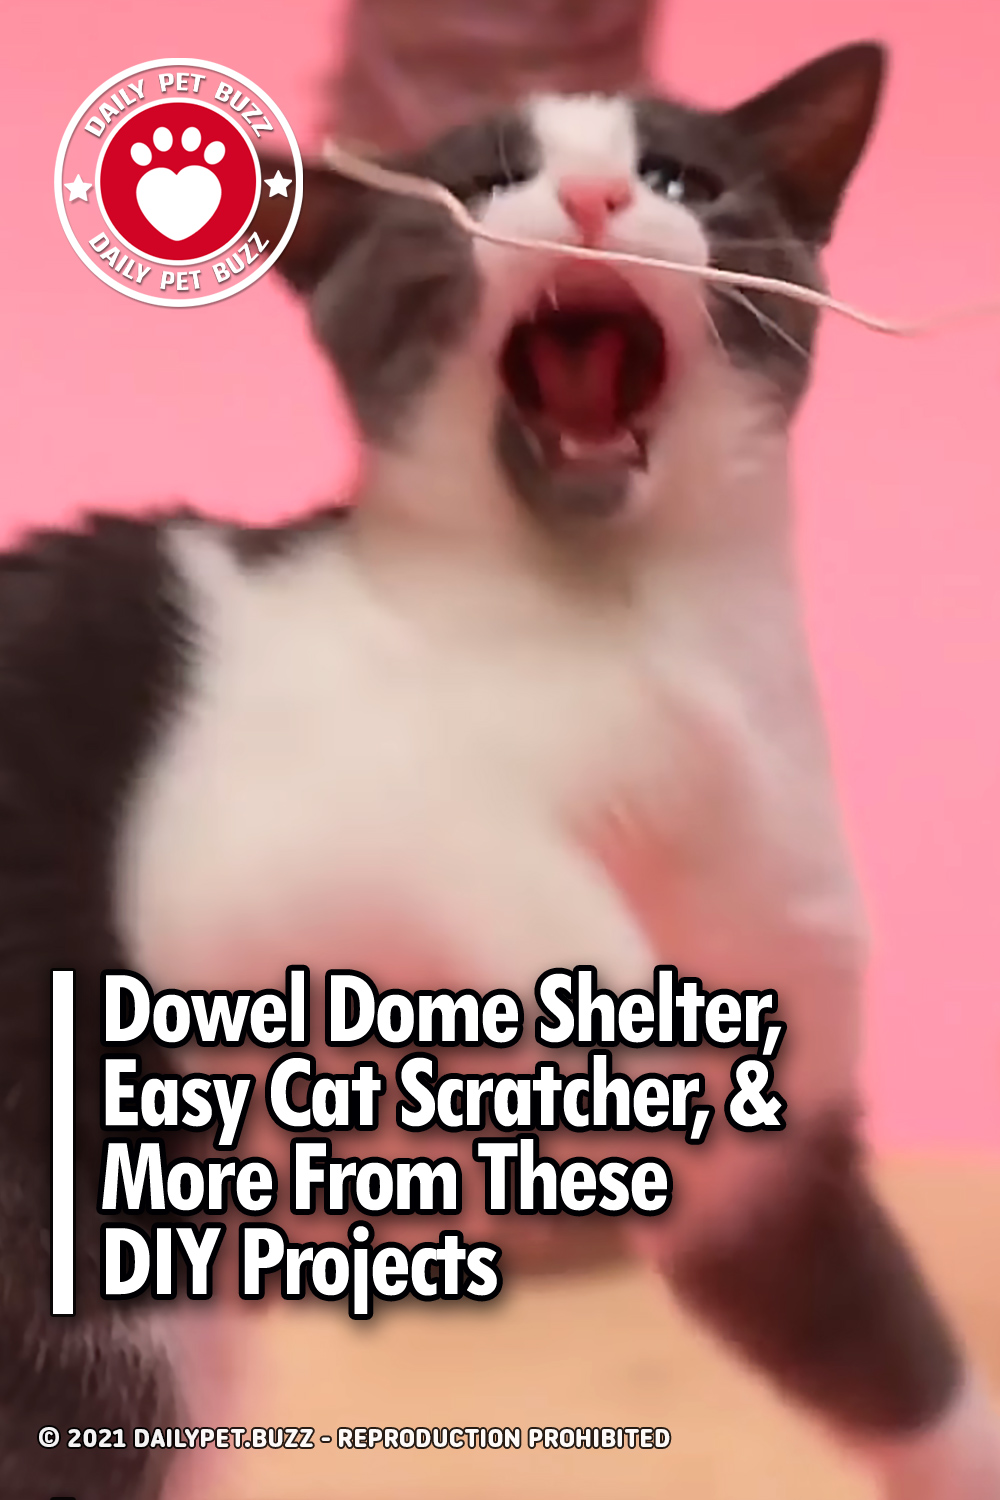 Dowel Dome Shelter, Easy Cat Scratcher, & More From These DIY Projects